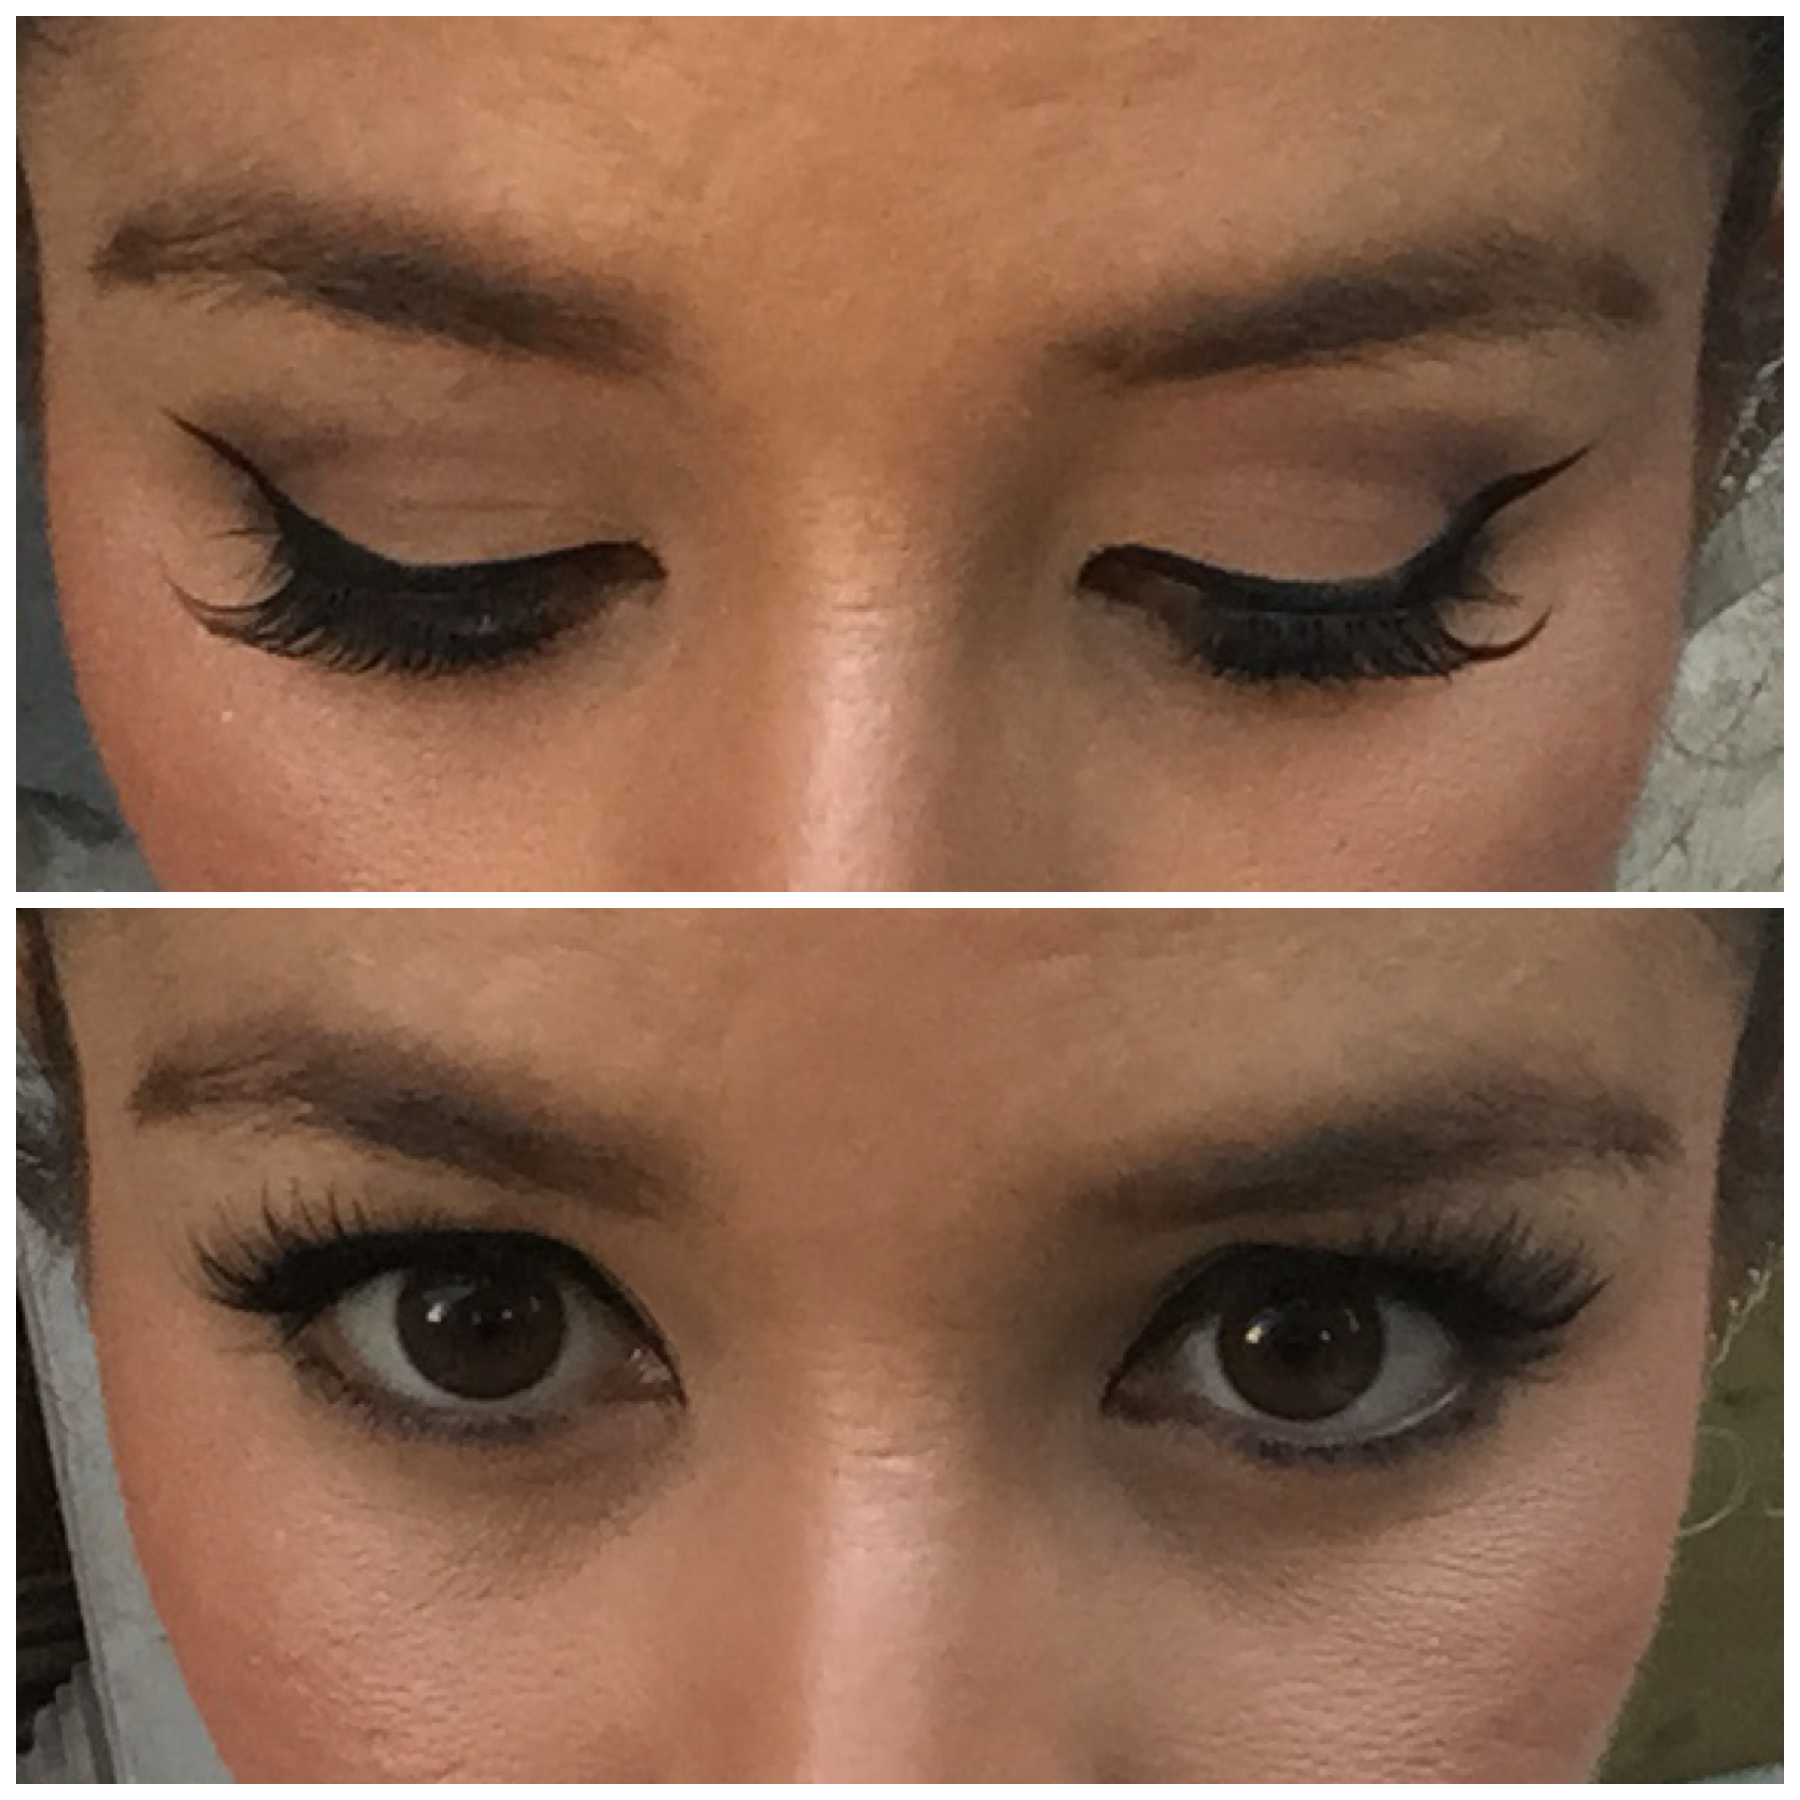 d0f43aa3da4 Now, I'm not sure I mentioned before, but the glue that comes with the Eylure  lashes is amazing – easy application mini wand and all night hold.